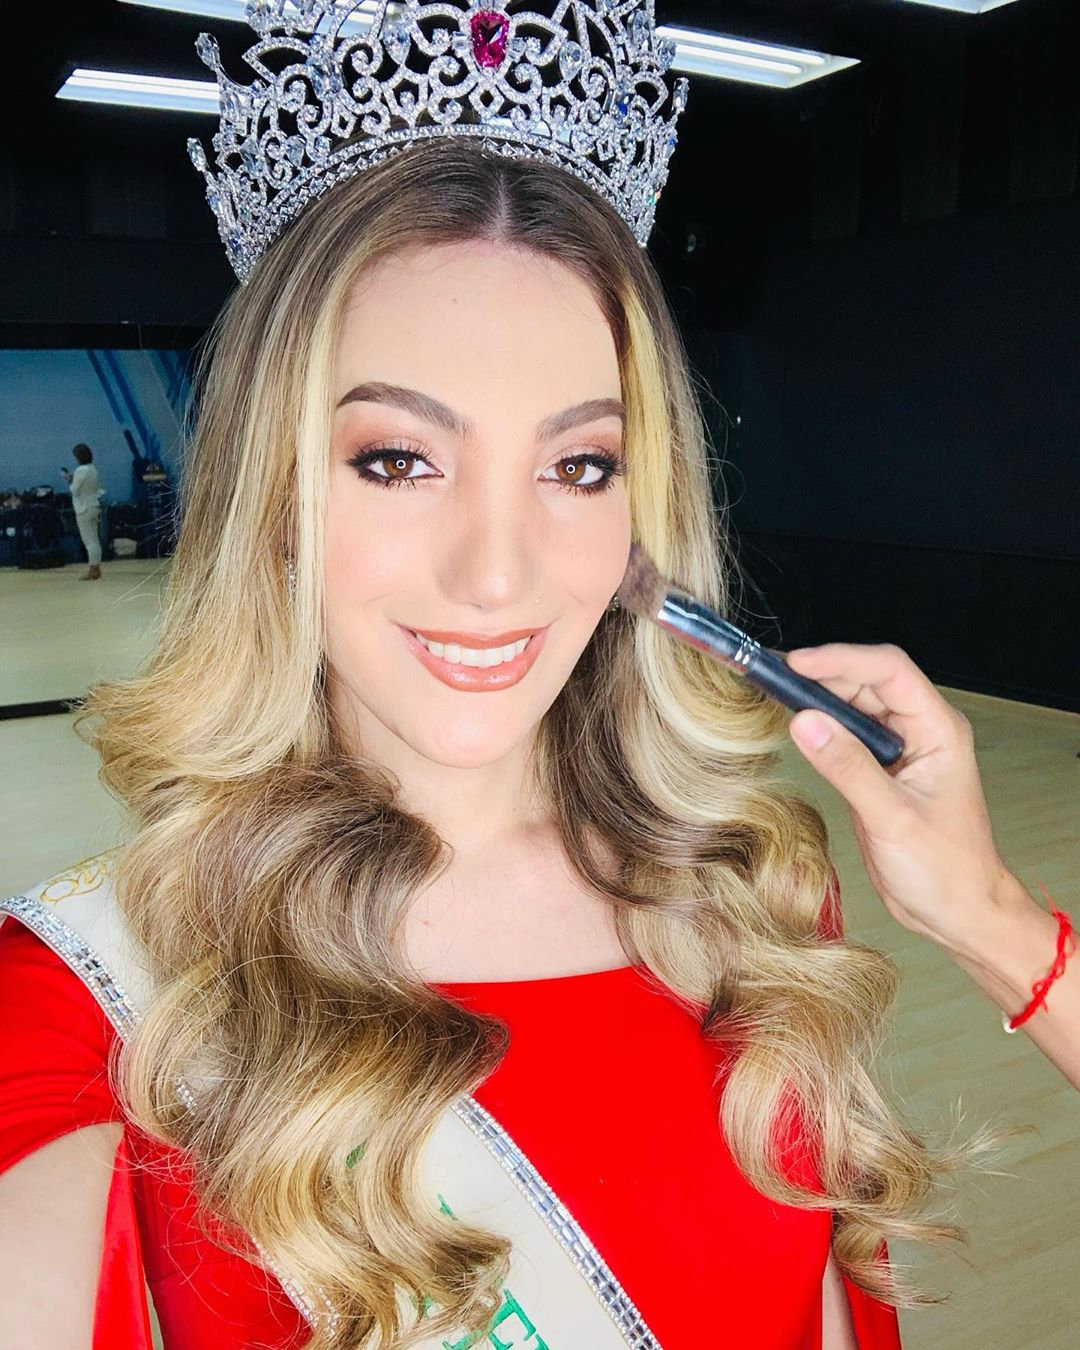 valentina fluchaire, miss international queen 2020. 89610711